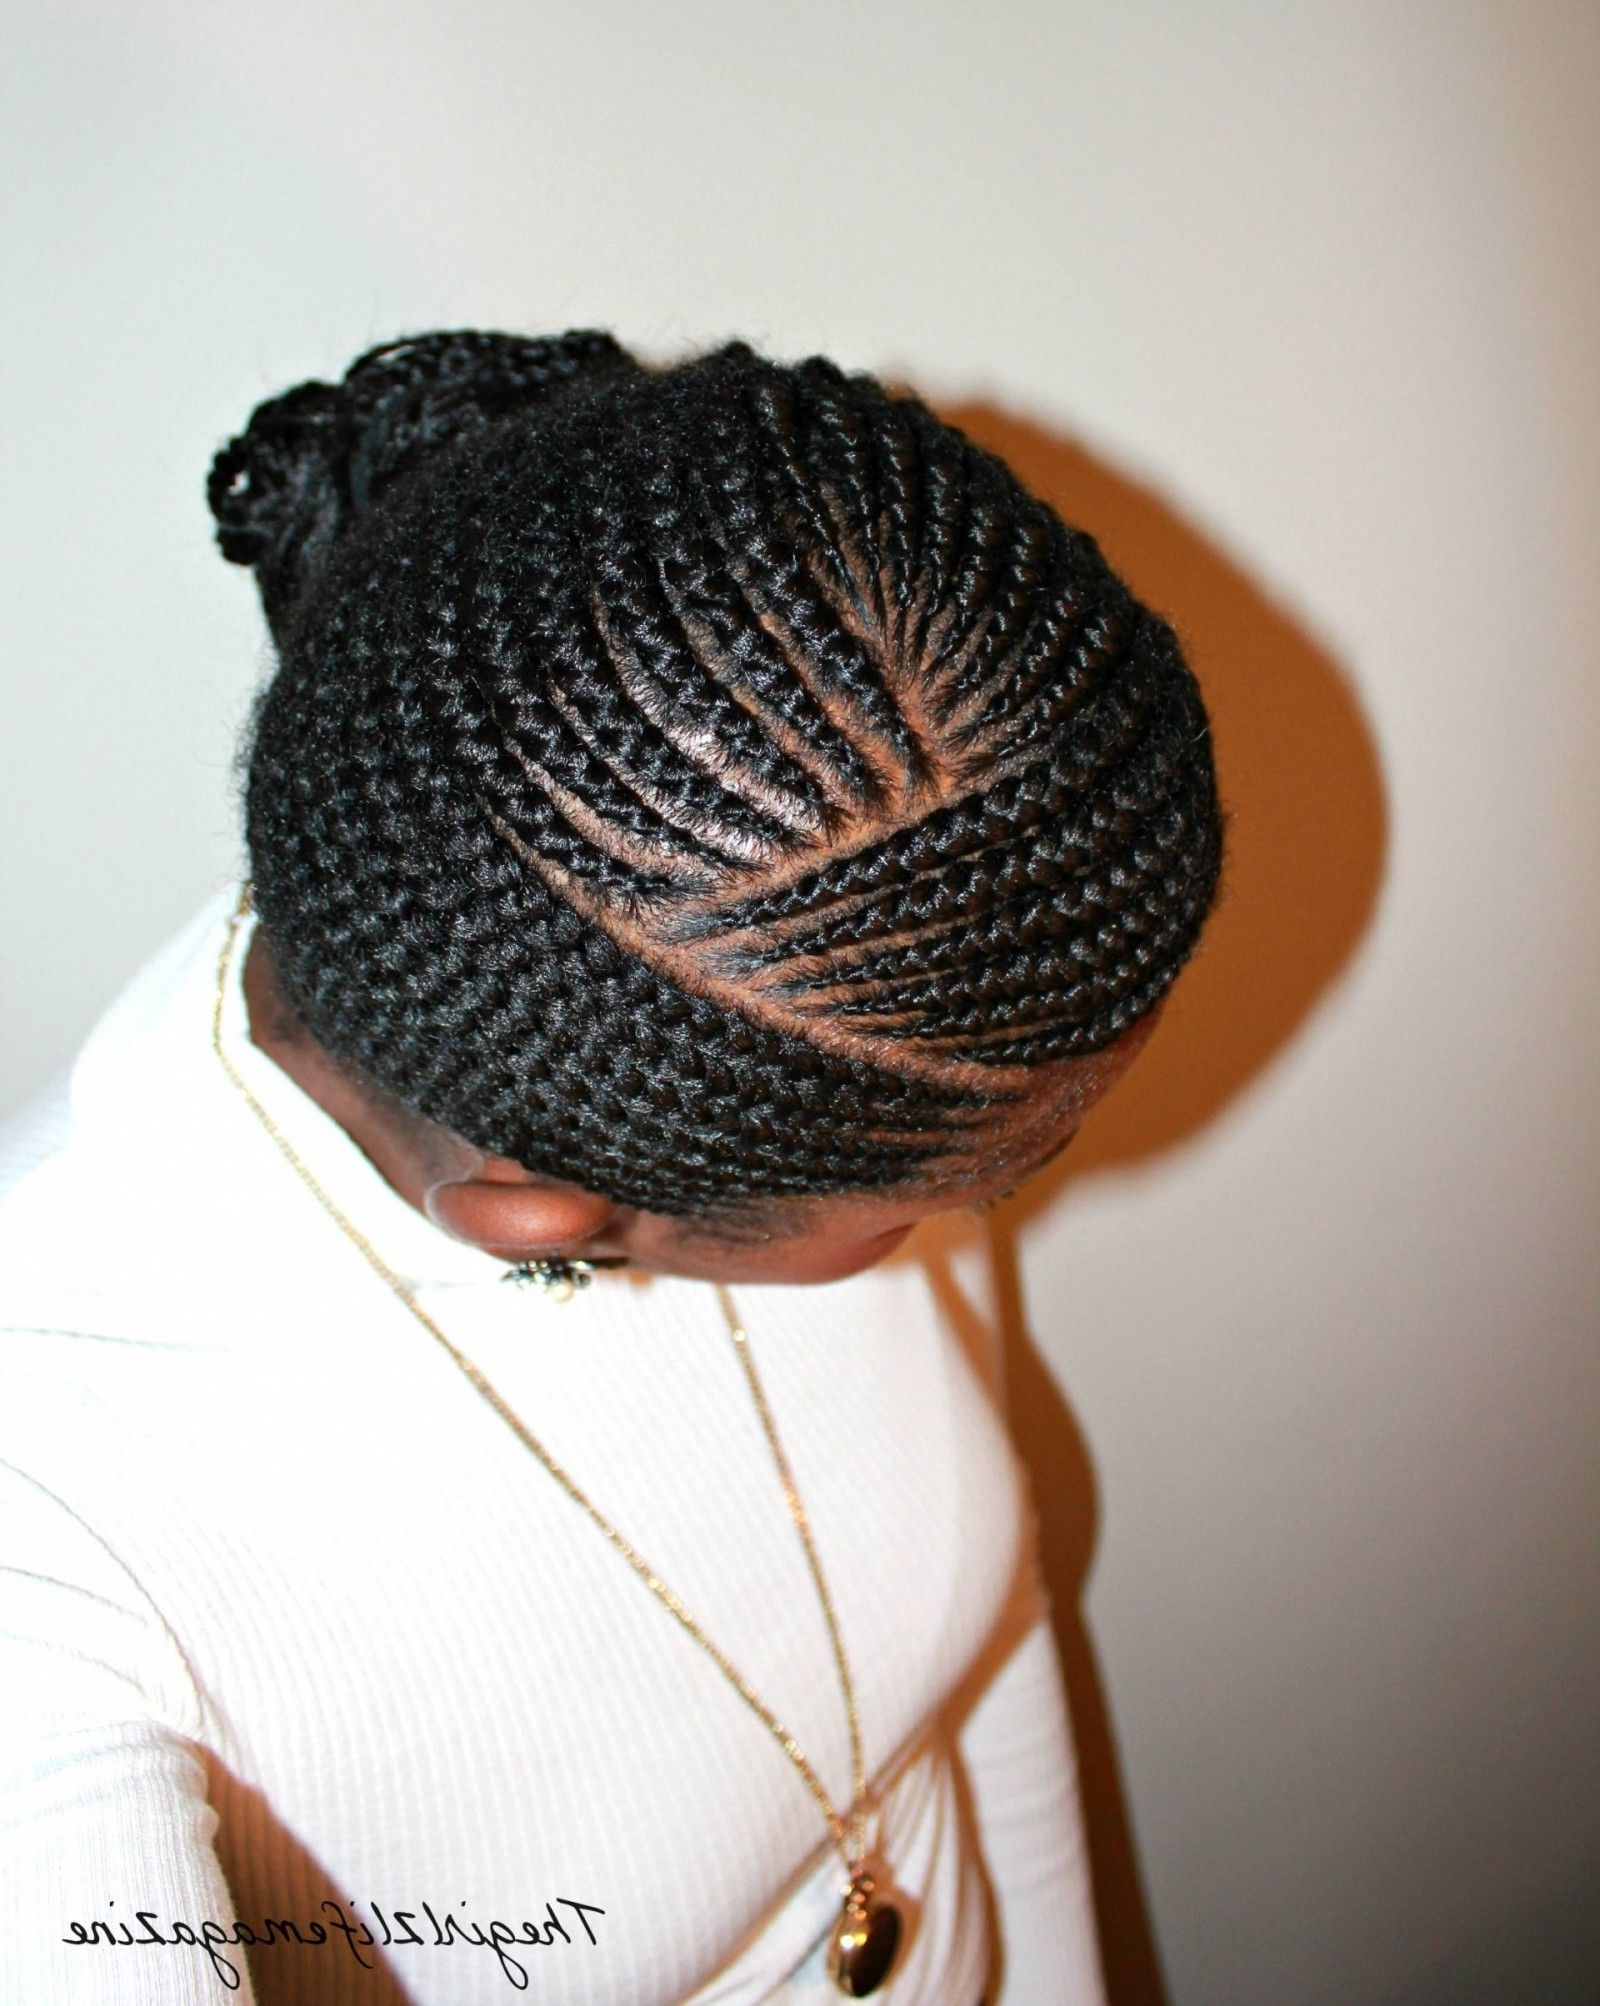 Pinmaimona On Je Fais Ce Que Je Veux Avec Mes Cheveux Within Most Up To Date Curvy Ghana Braids With Crown Bun (View 10 of 15)